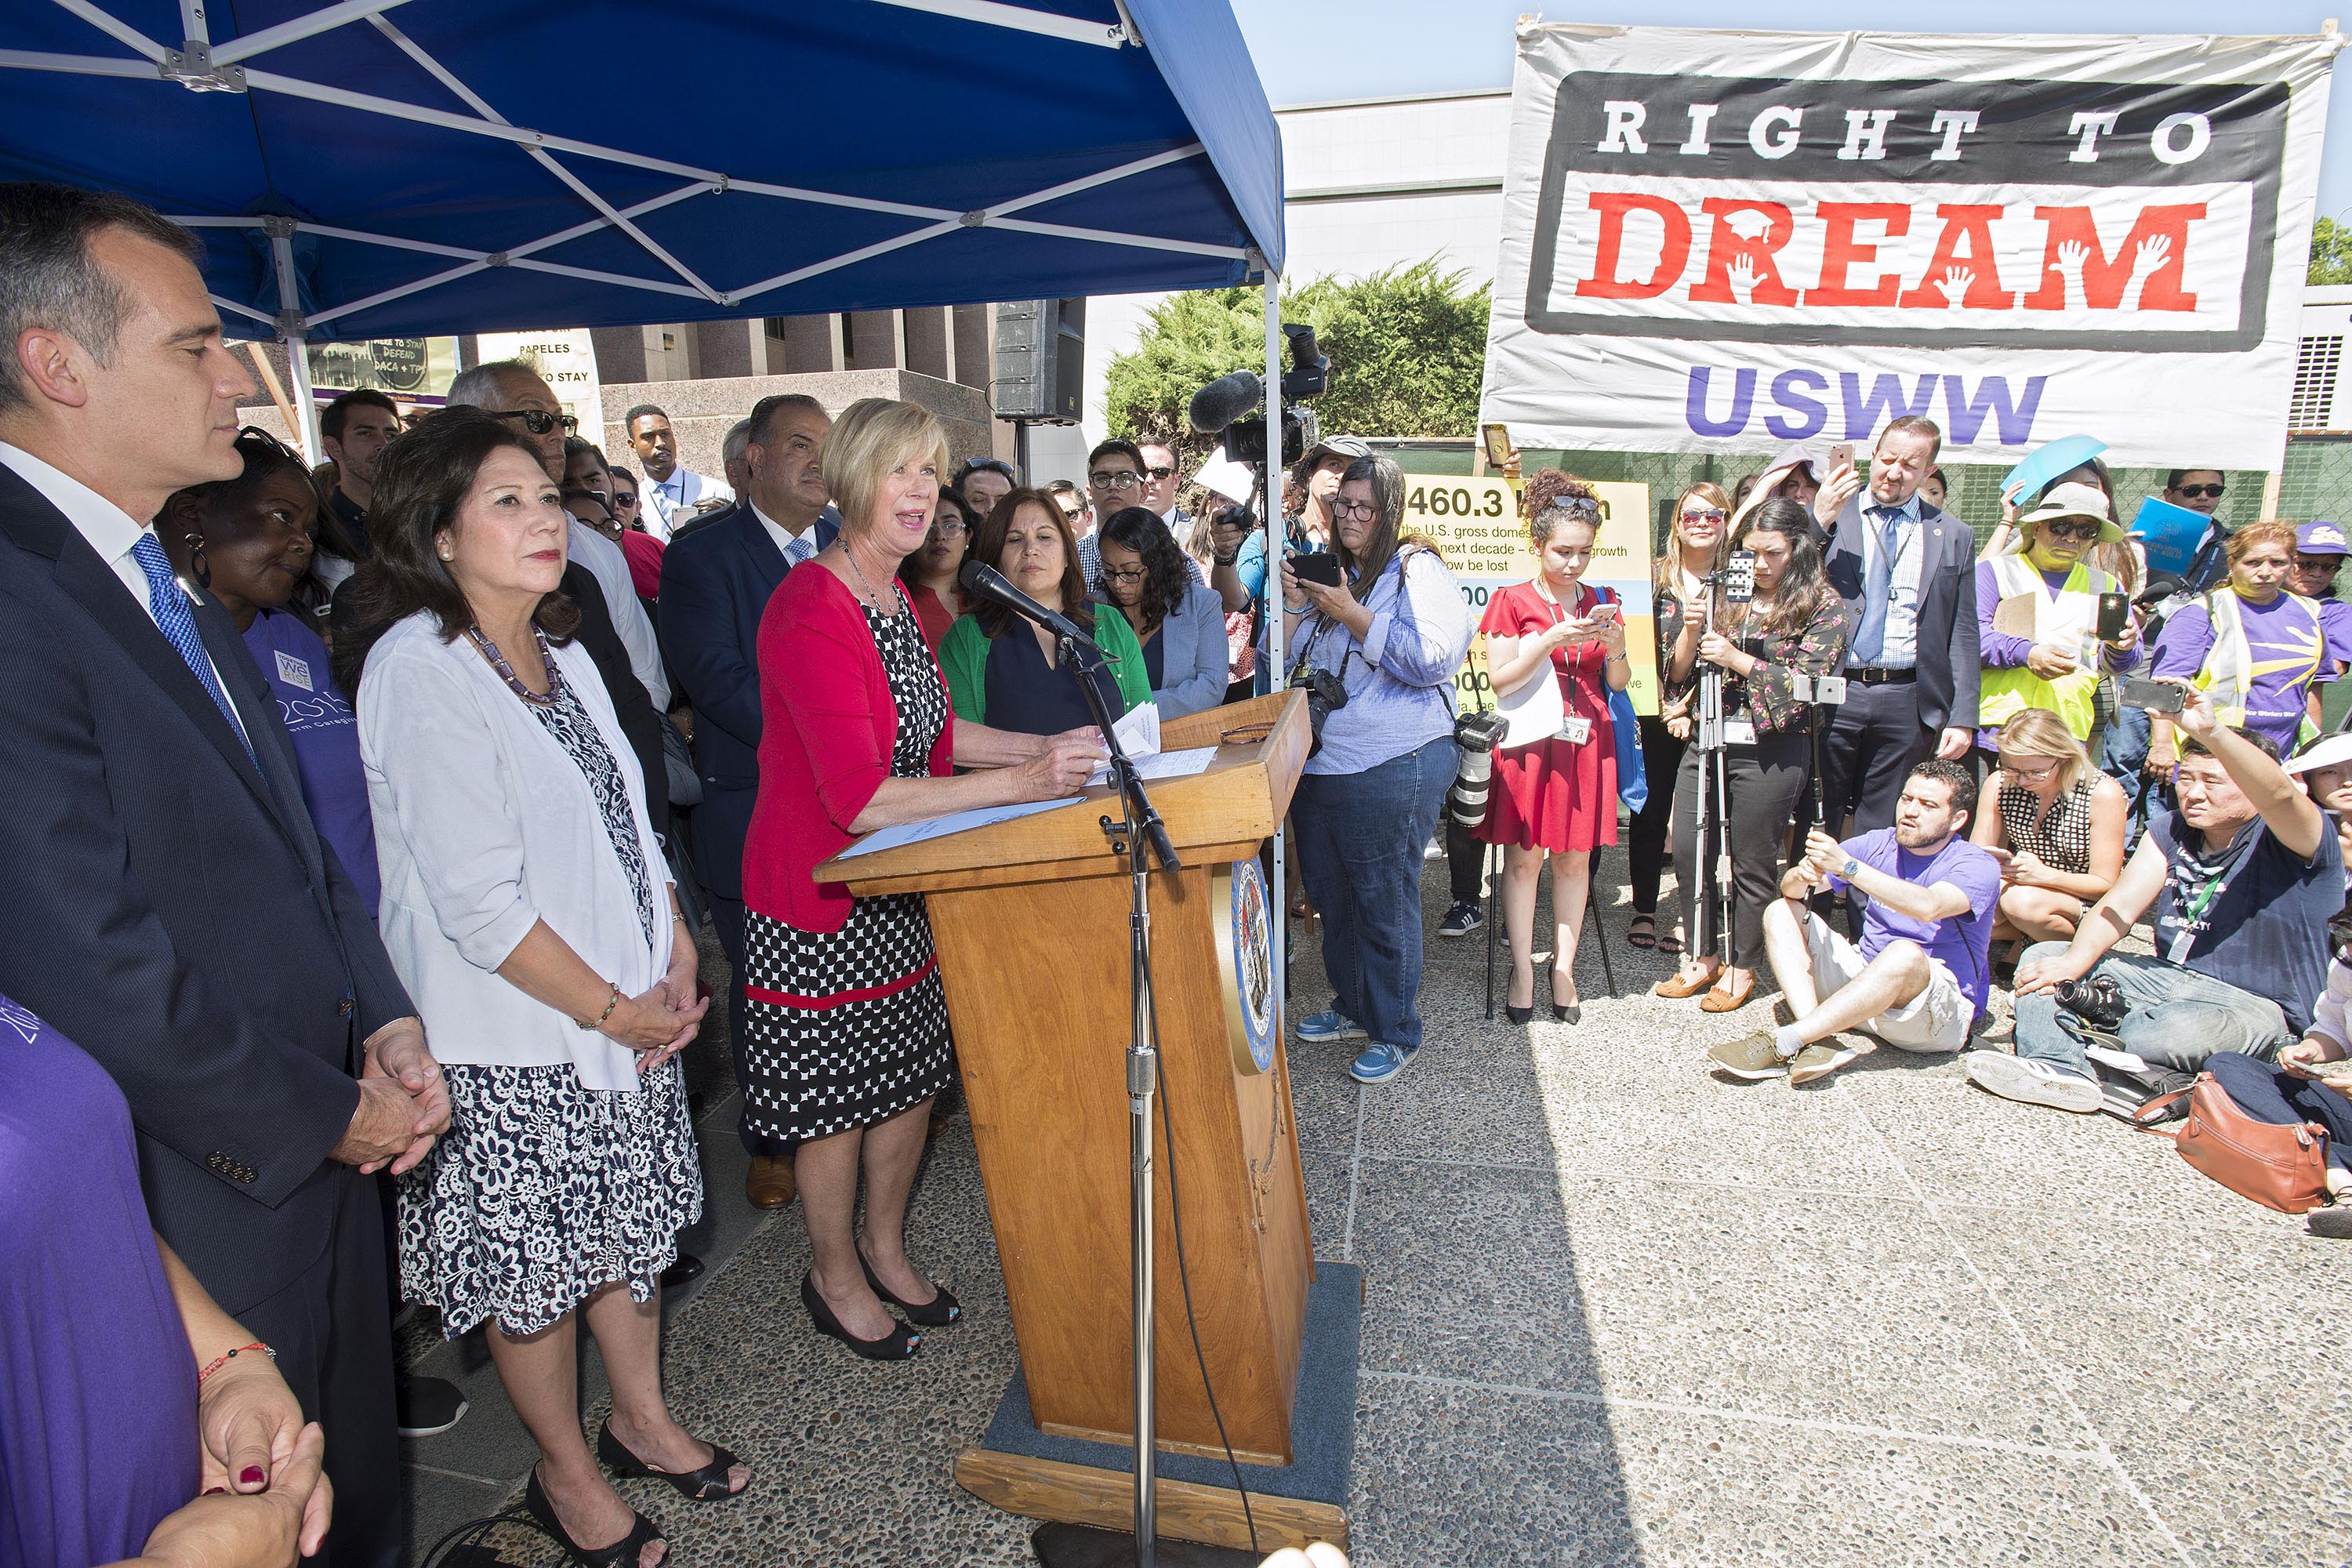 Districts 1 and 4 – Supervisors Hilda L Solis and Janice Hahn<br>  <b>Sept. 5, 2017 – DACA press conference.</b><br><i>Photo by Diandra Jay / Board of Supervisors</i>